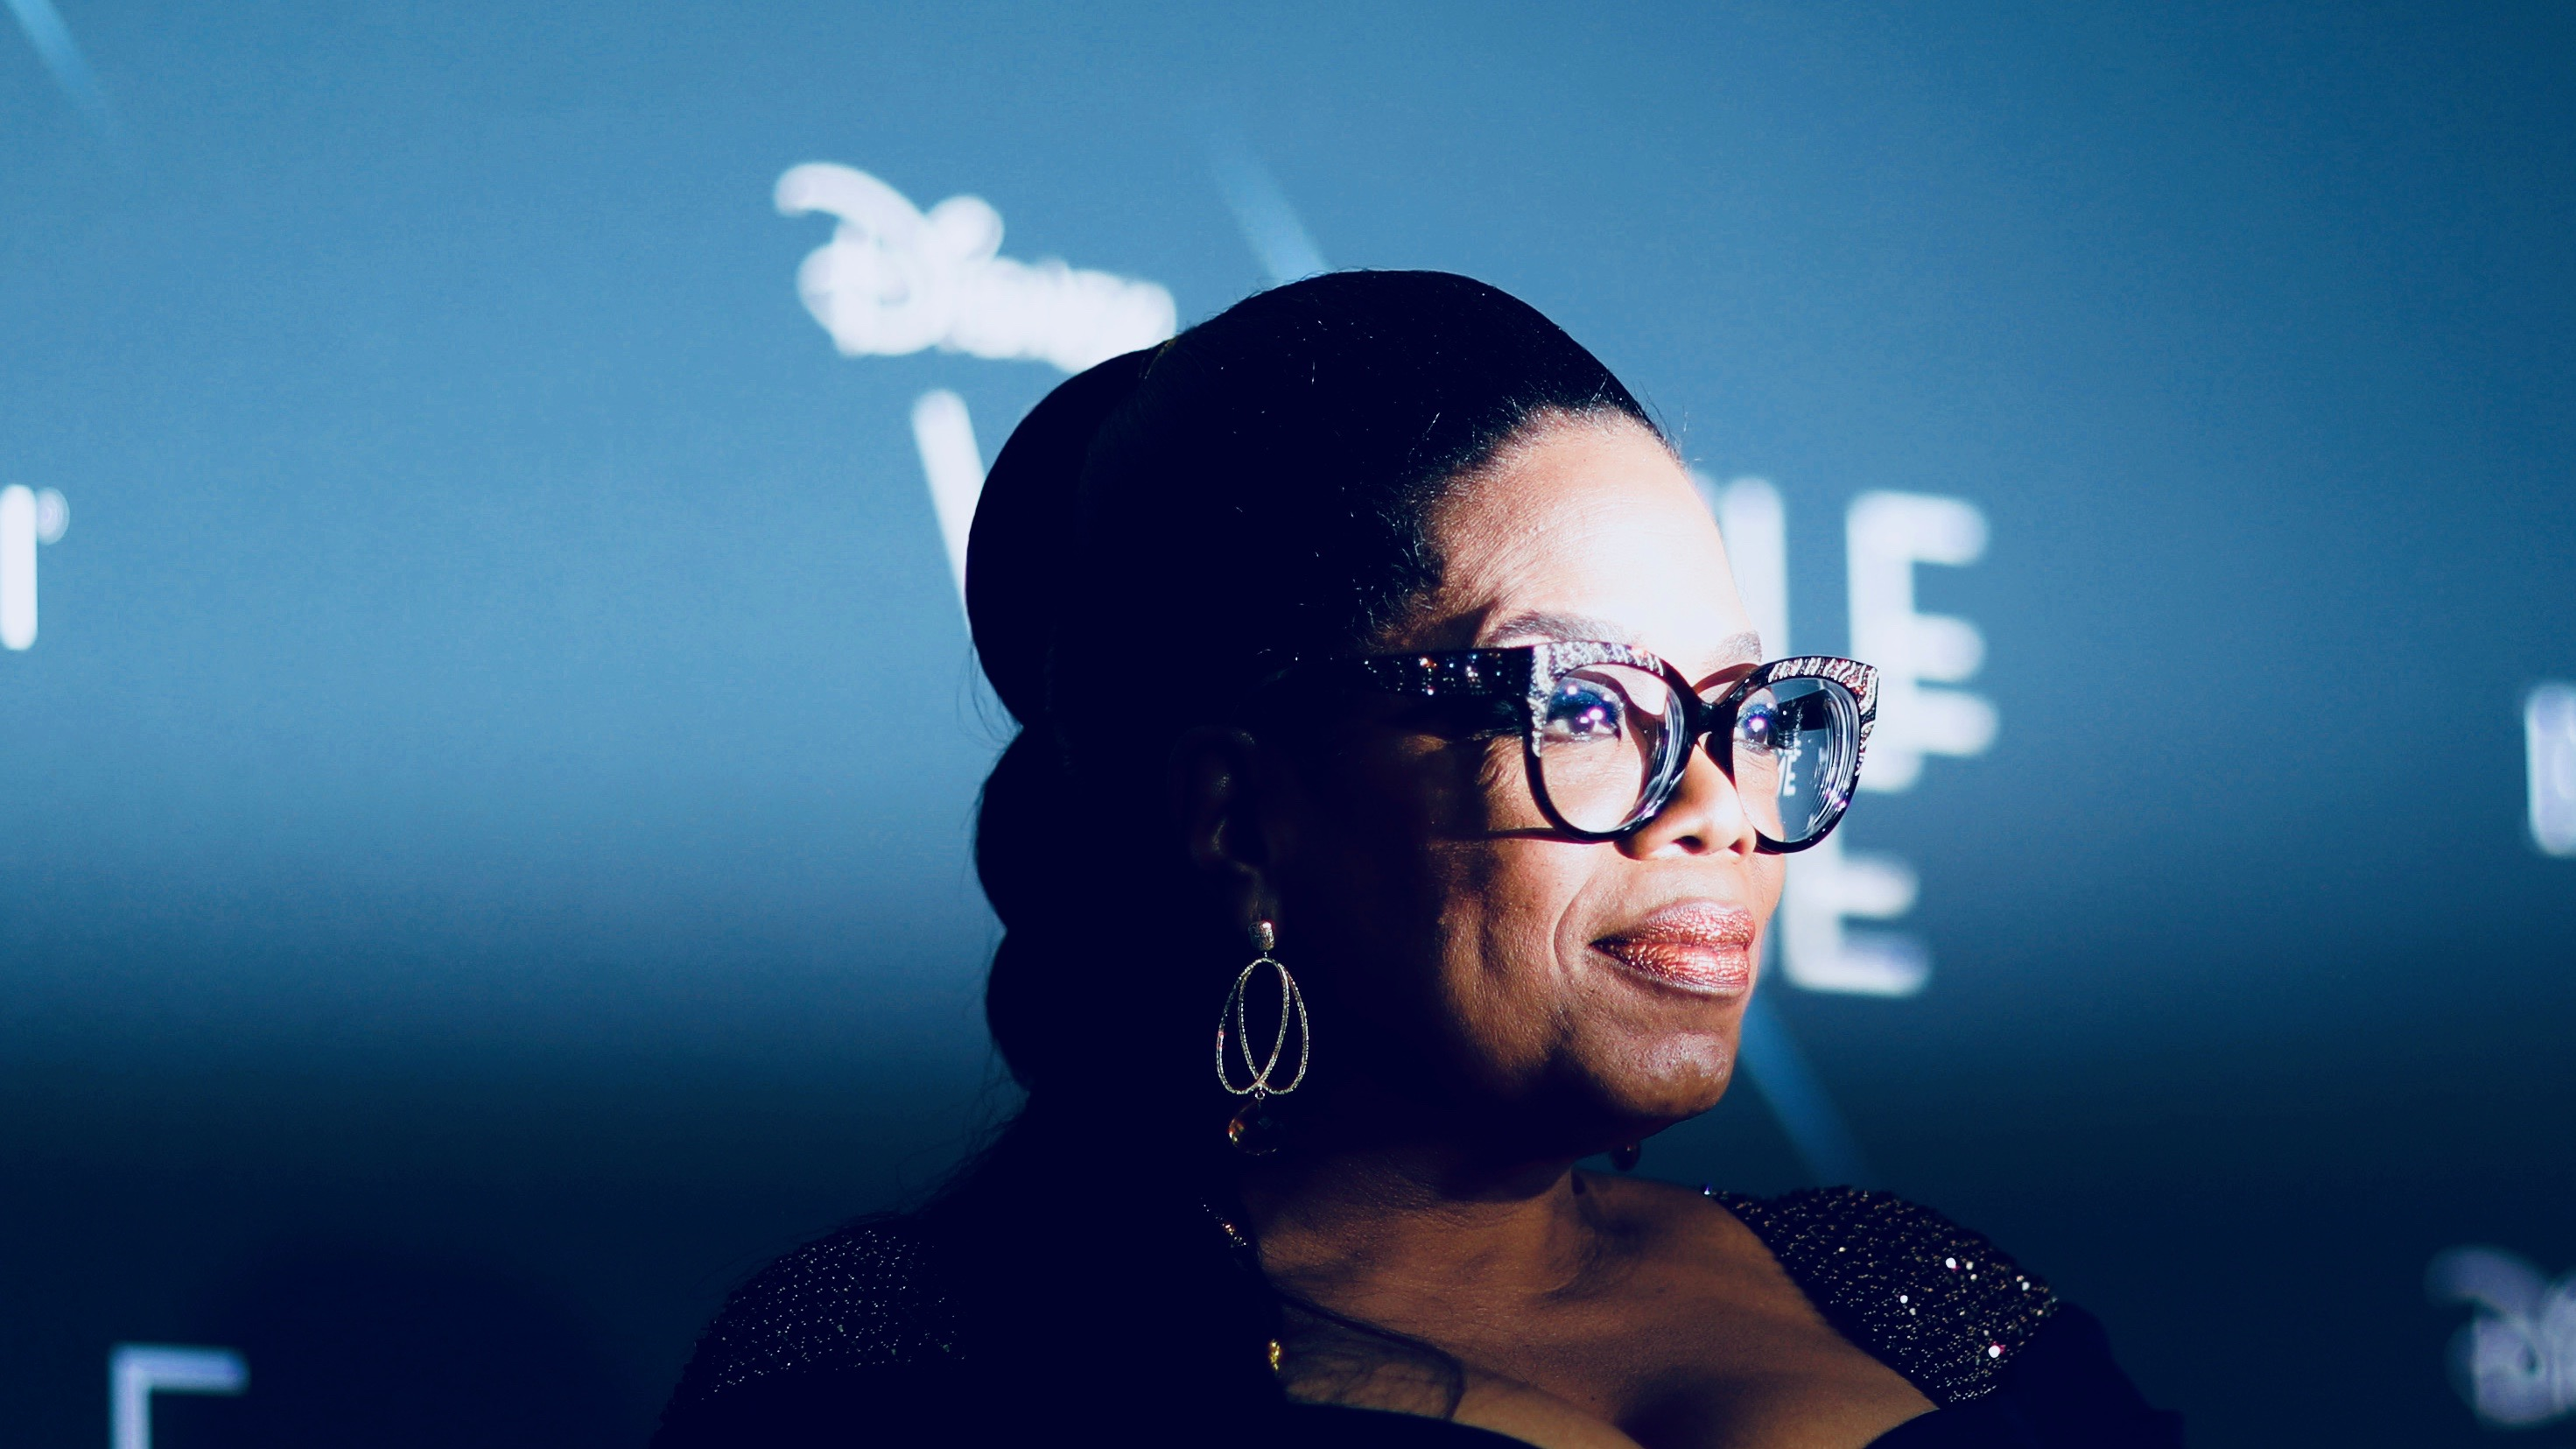 Oprah Winfrey at a Wrinkle in Time opening.